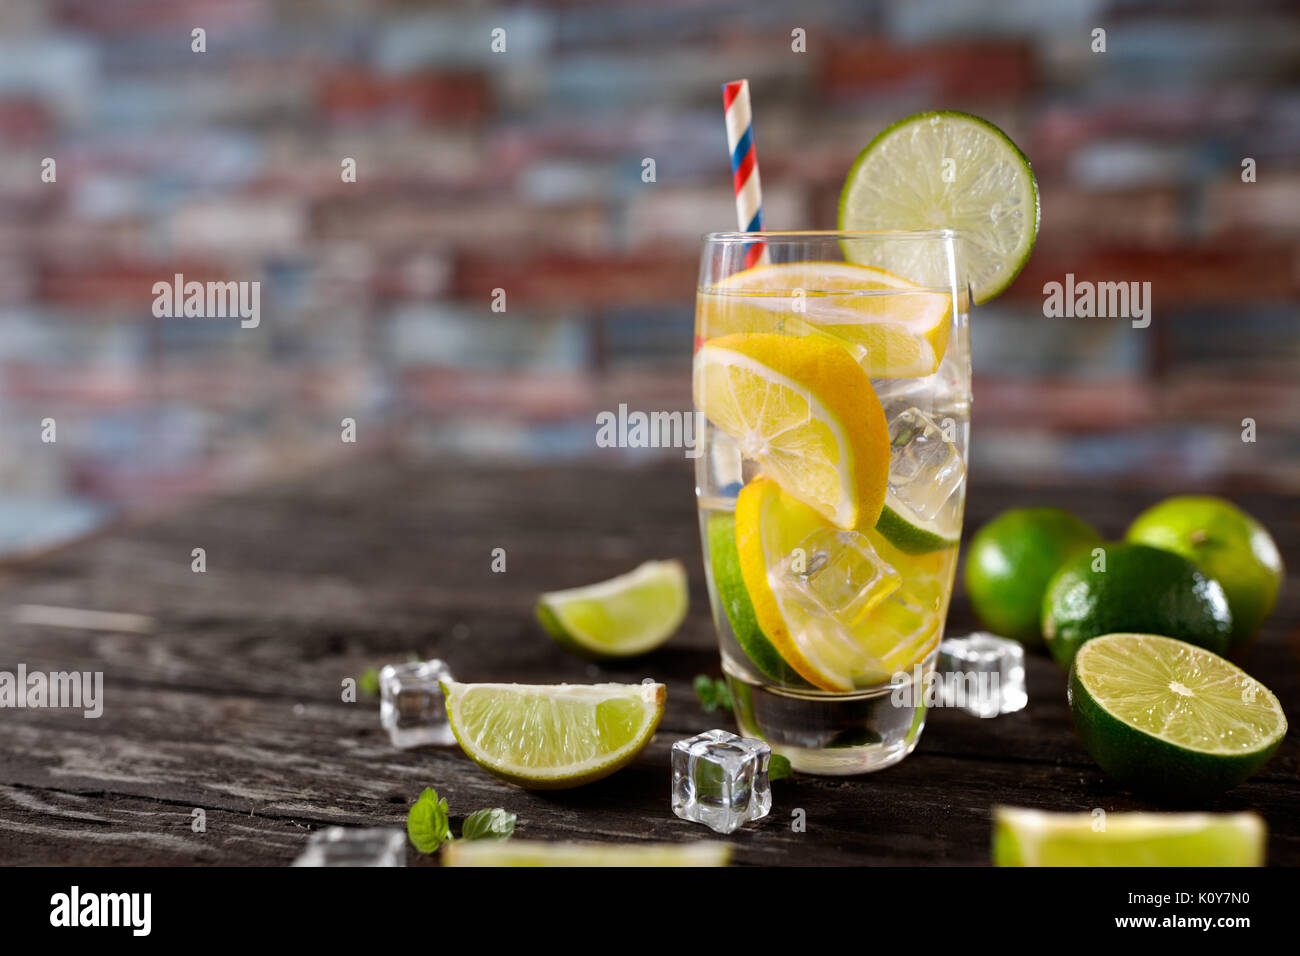 Citrus fruit fresh summer cocktail with water dieting in glass- healthy lifestyle concept - Stock Image